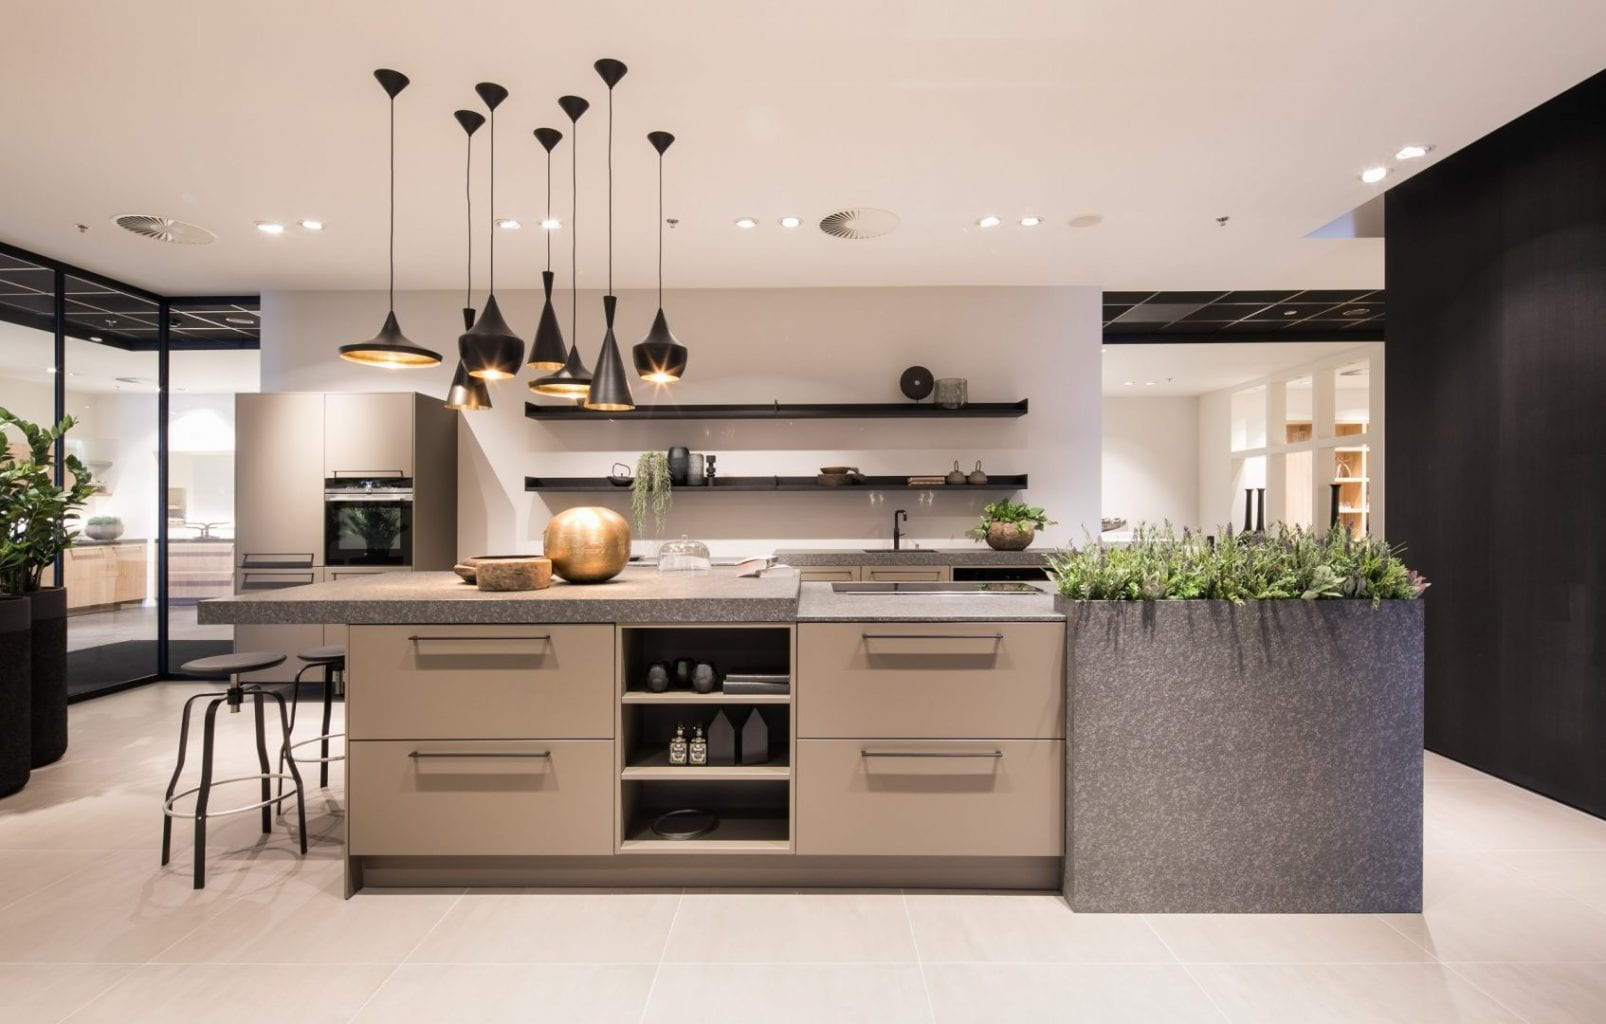 Siematic Design Keuken Siematic Urban Keuken S6 Goergen Keukens Uw Siematic Dealer